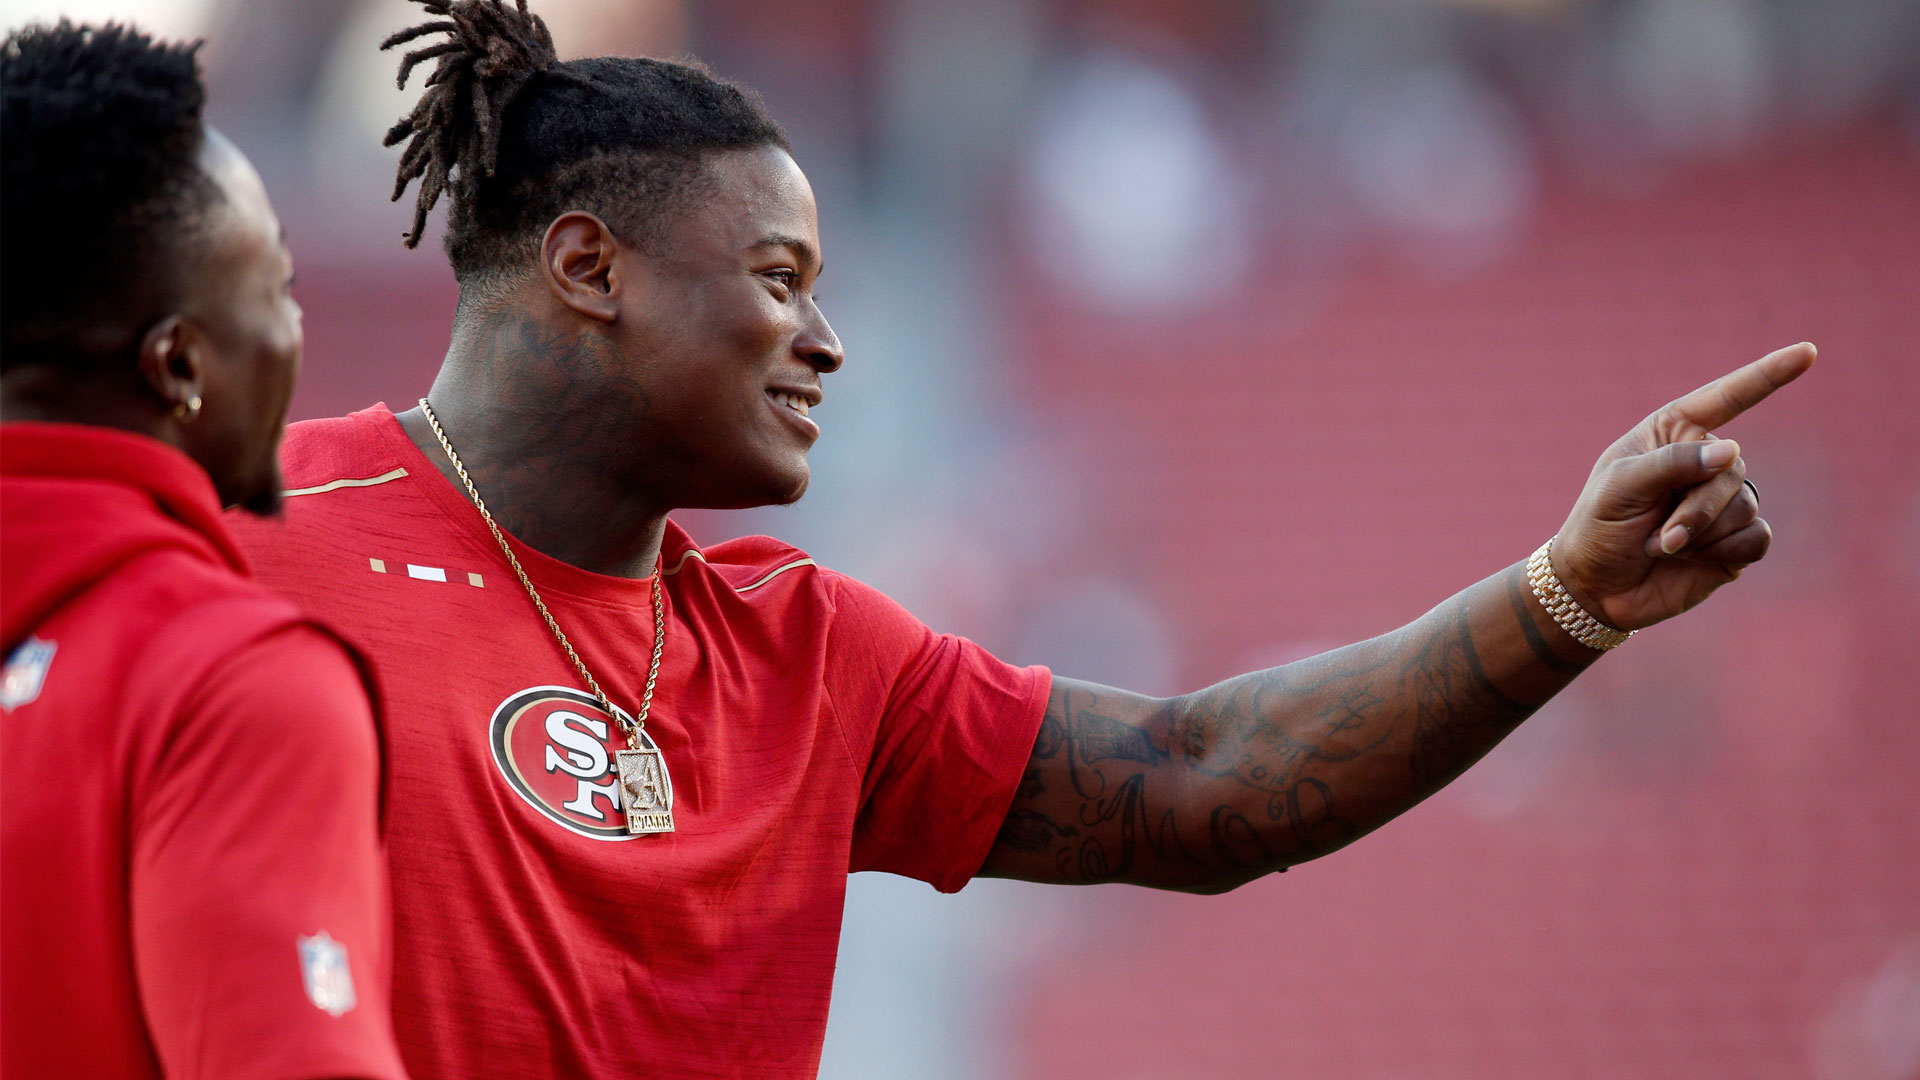 Reuben Foster reflects, apologizes for club incident; Kyle Shanahan not upset